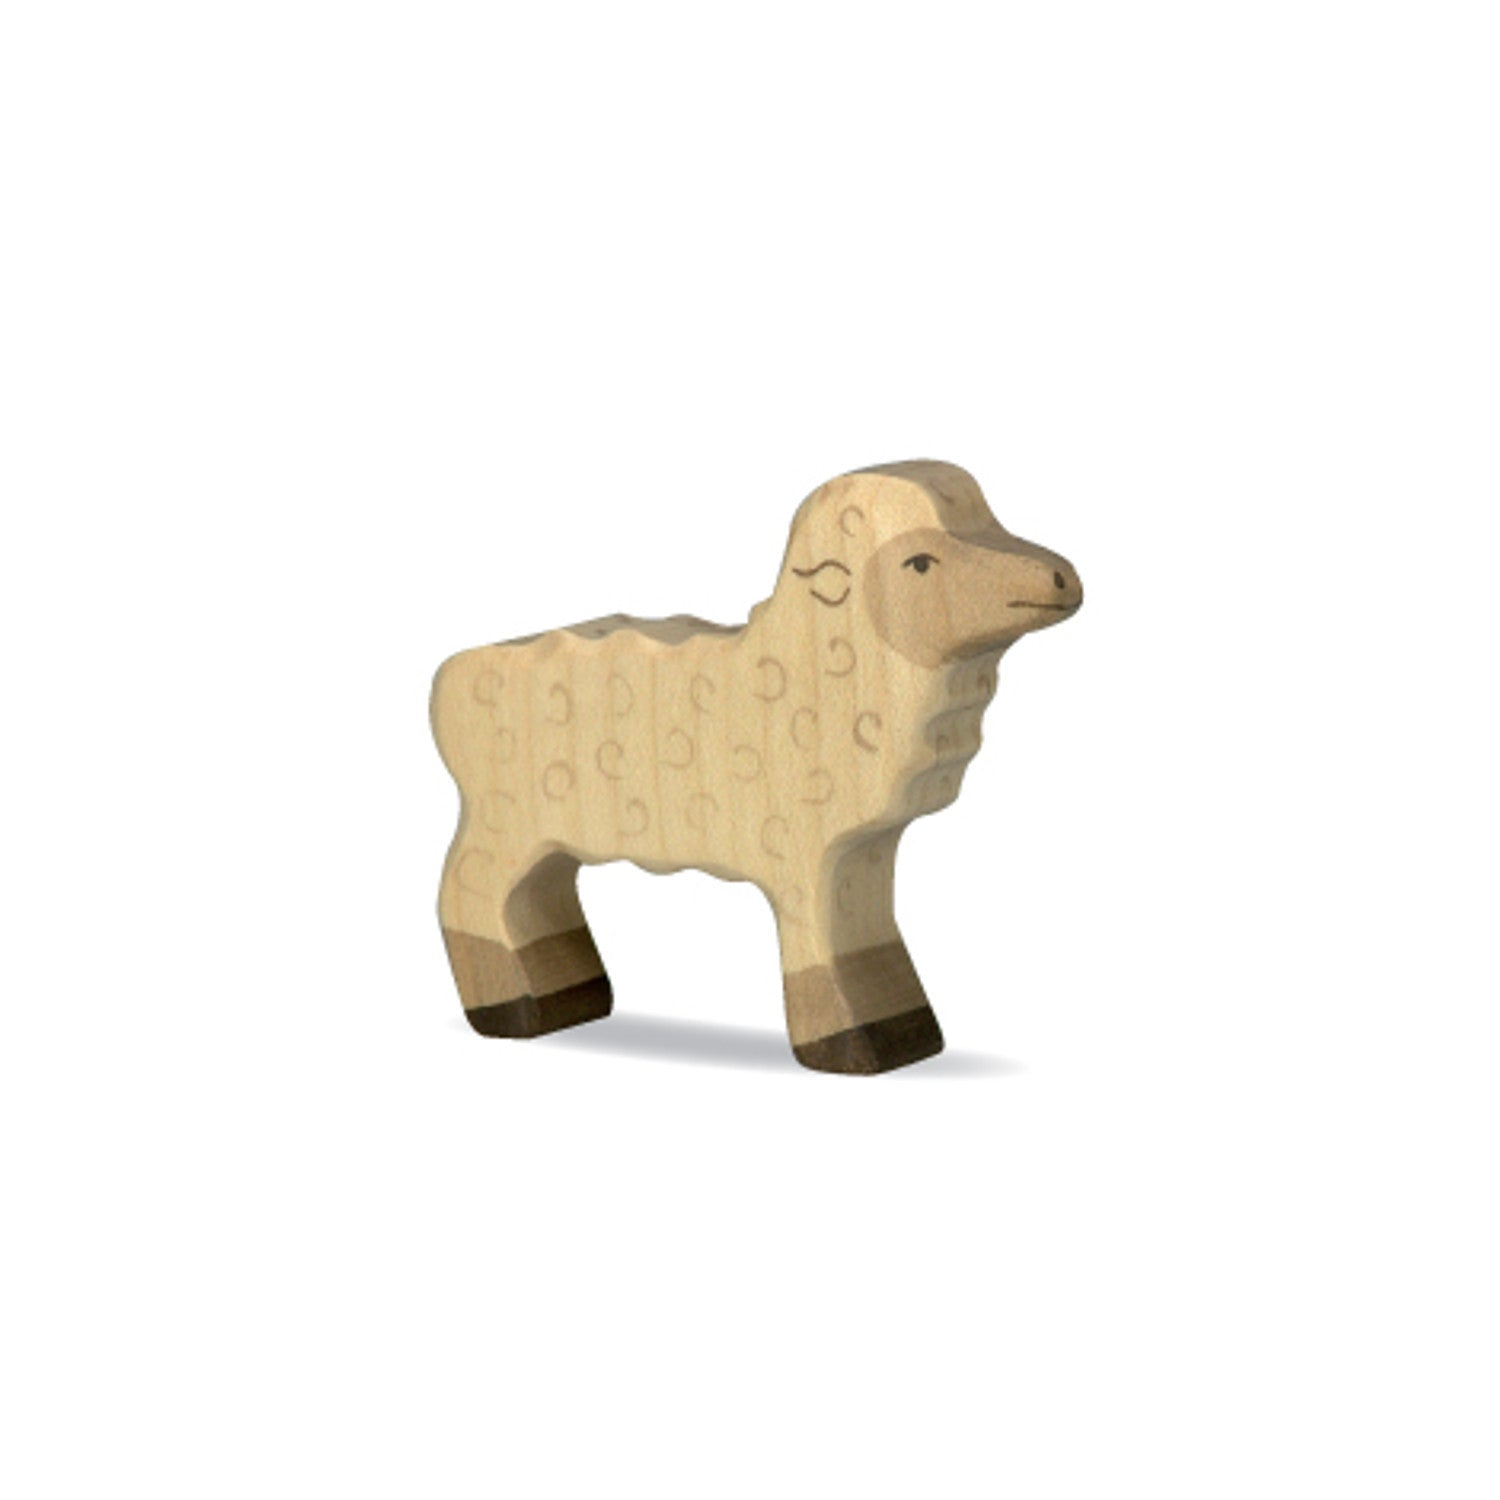 Holztiger wooden hand carved lamb figurine imaginative play